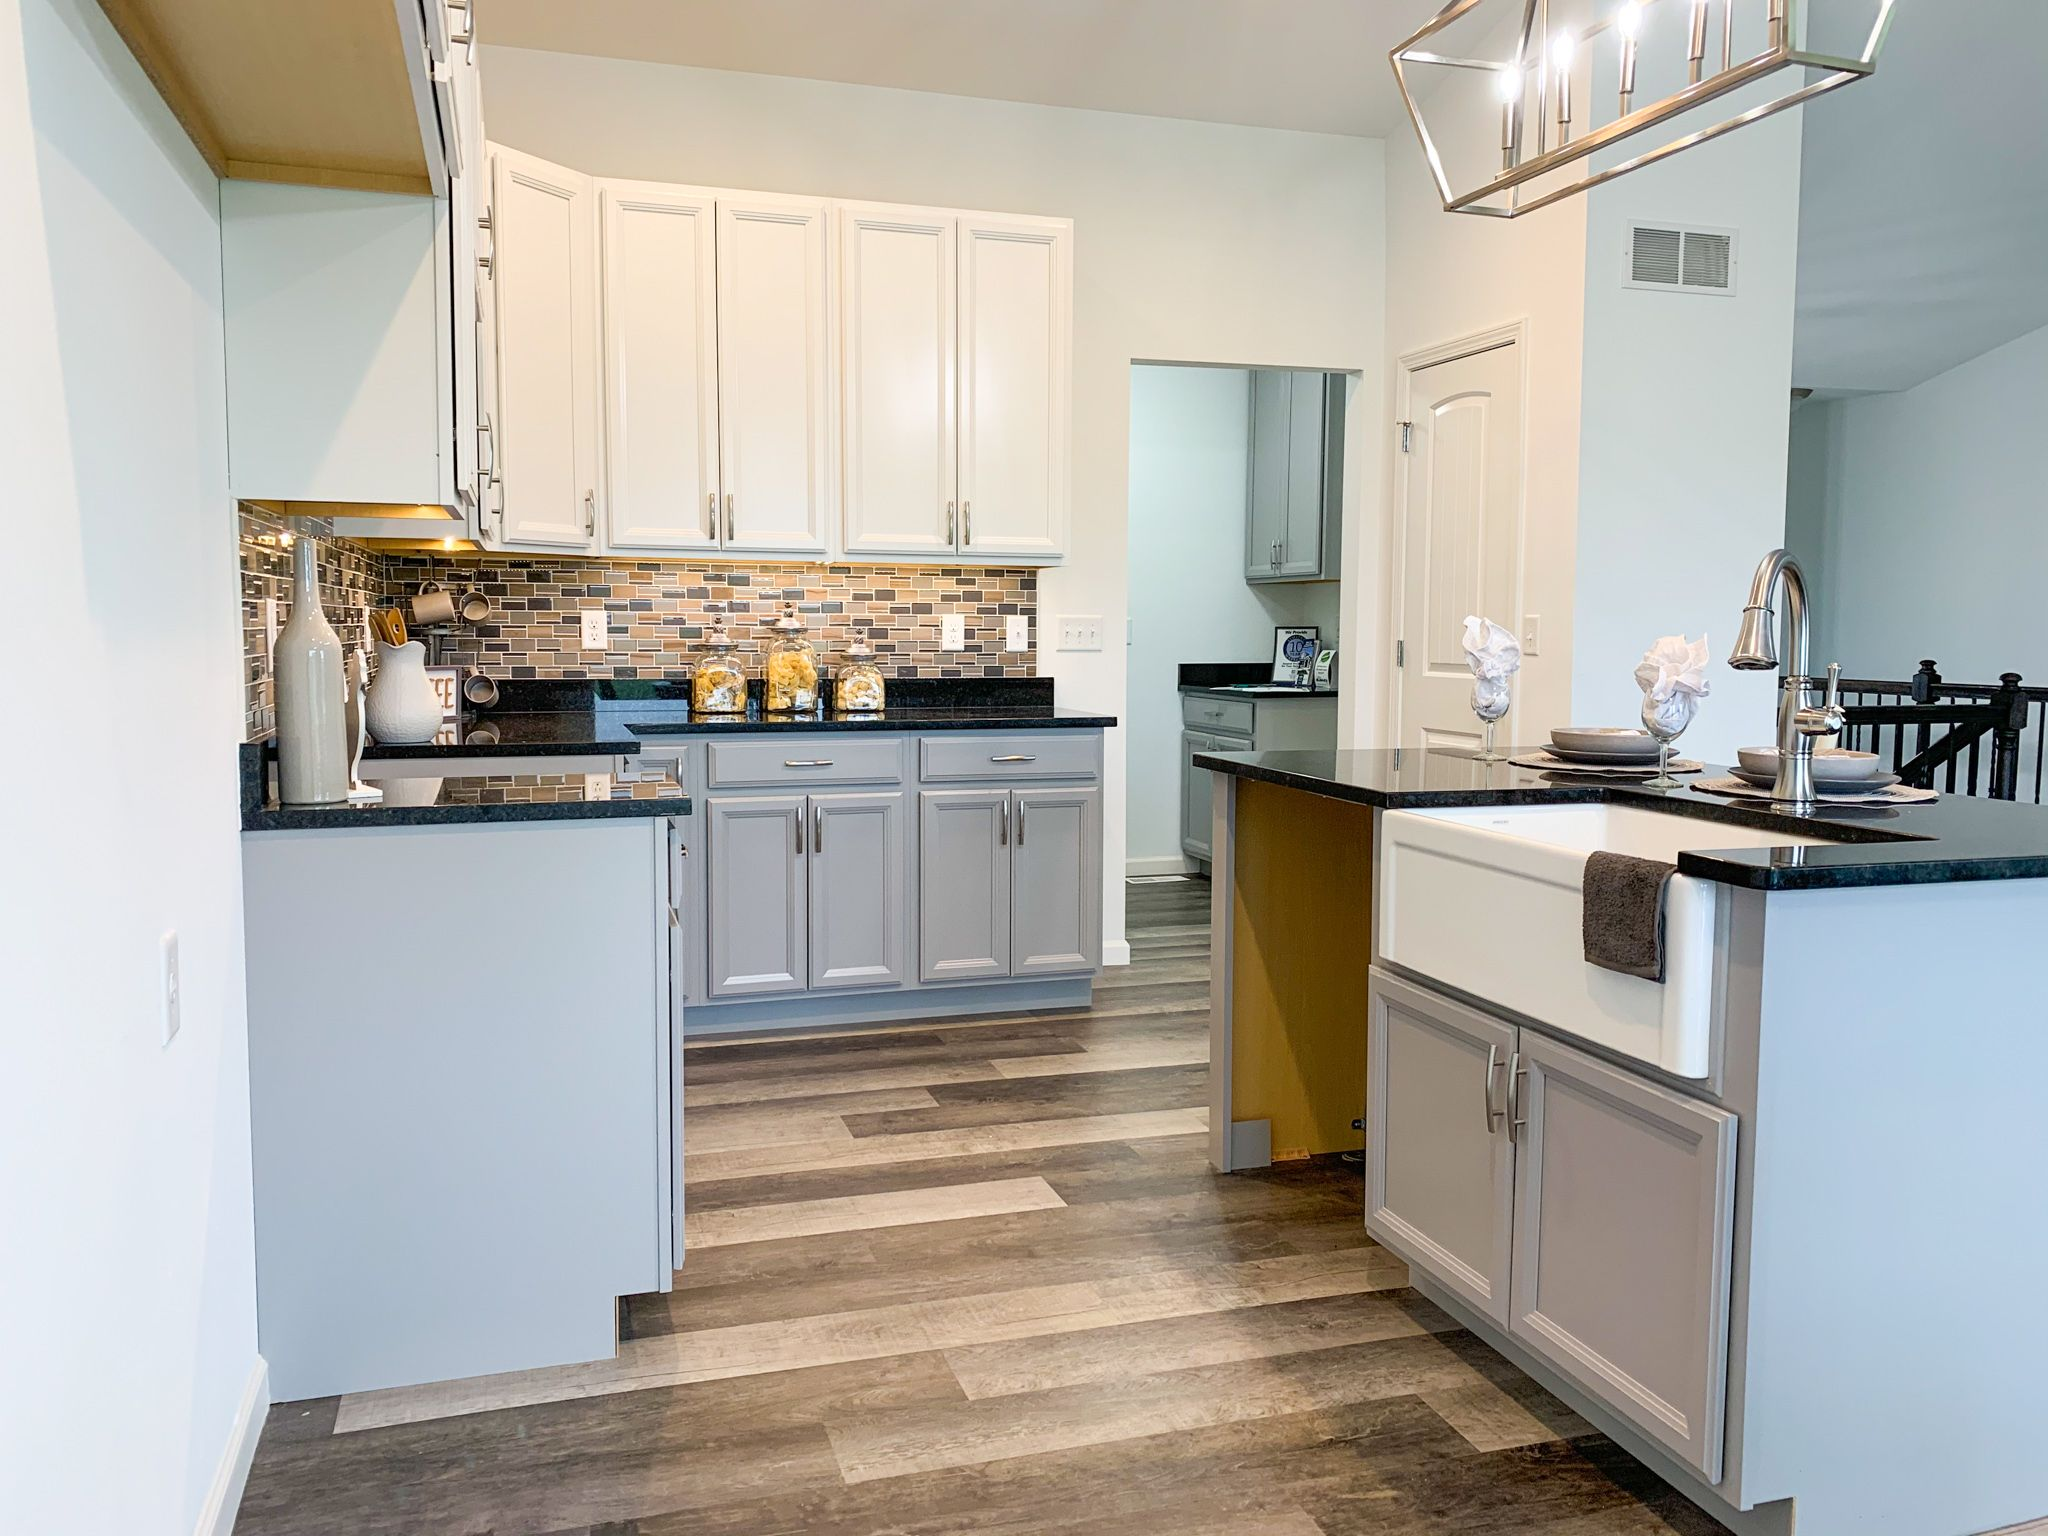 Kitchen featured in the Alexandria By C.A. Jones, Inc.  in St. Louis, IL